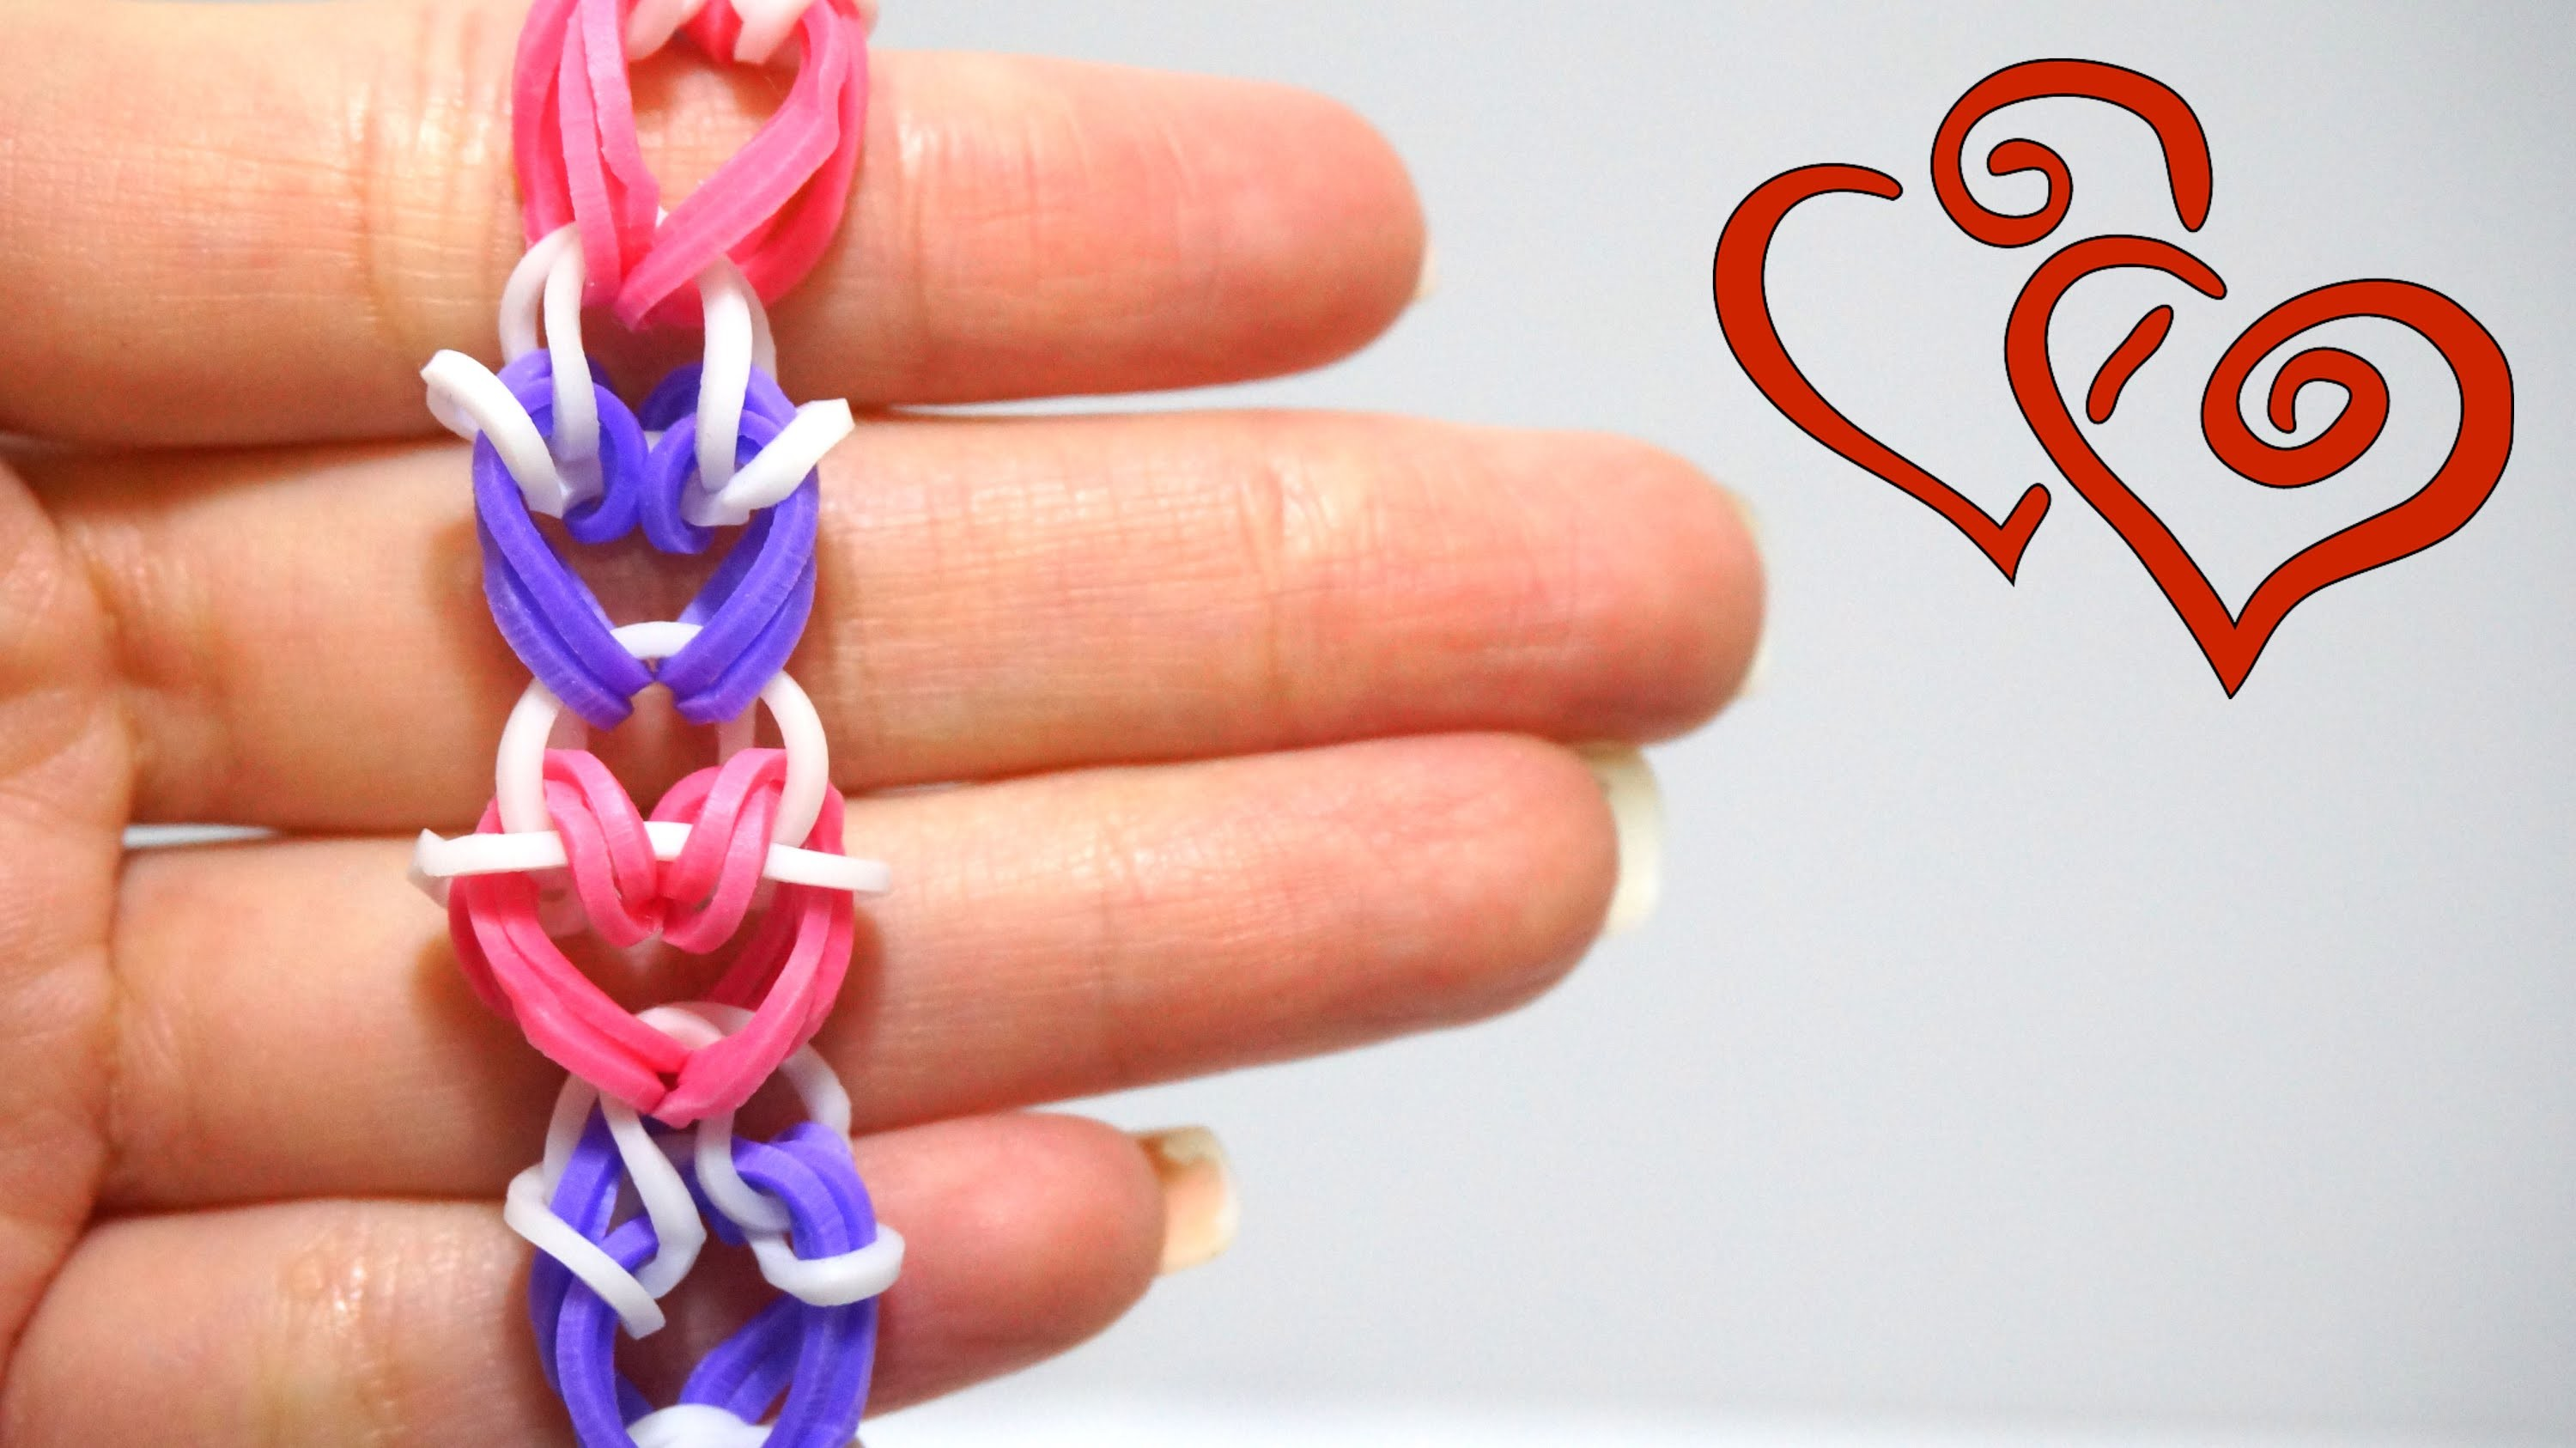 Rainbow Loom Stitched Heart Bracelet pretty ang easy to make with two pencils